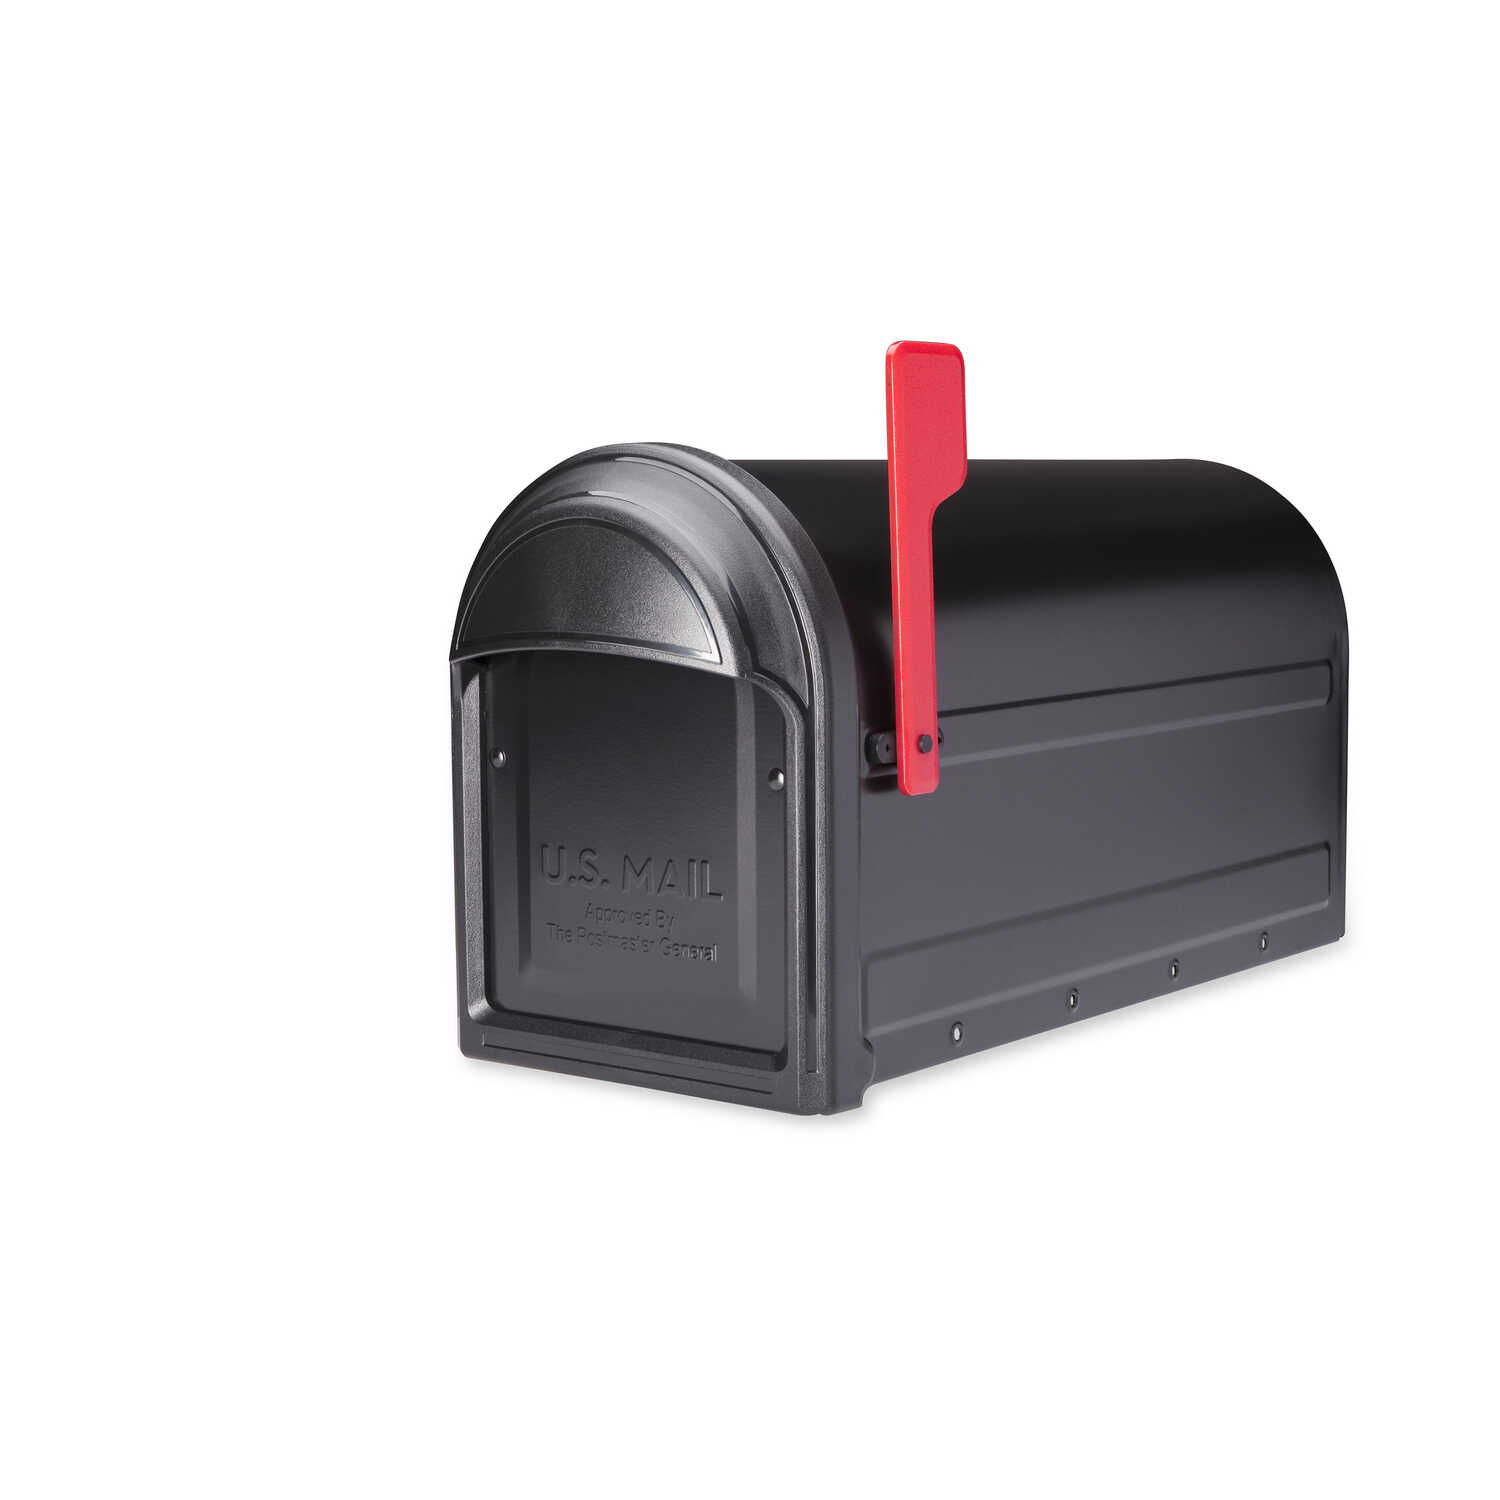 Architectural Mailboxes  Barrington  Galvanized Steel  Post Mounted  Black  Mailbox  11 in. H x 8.8